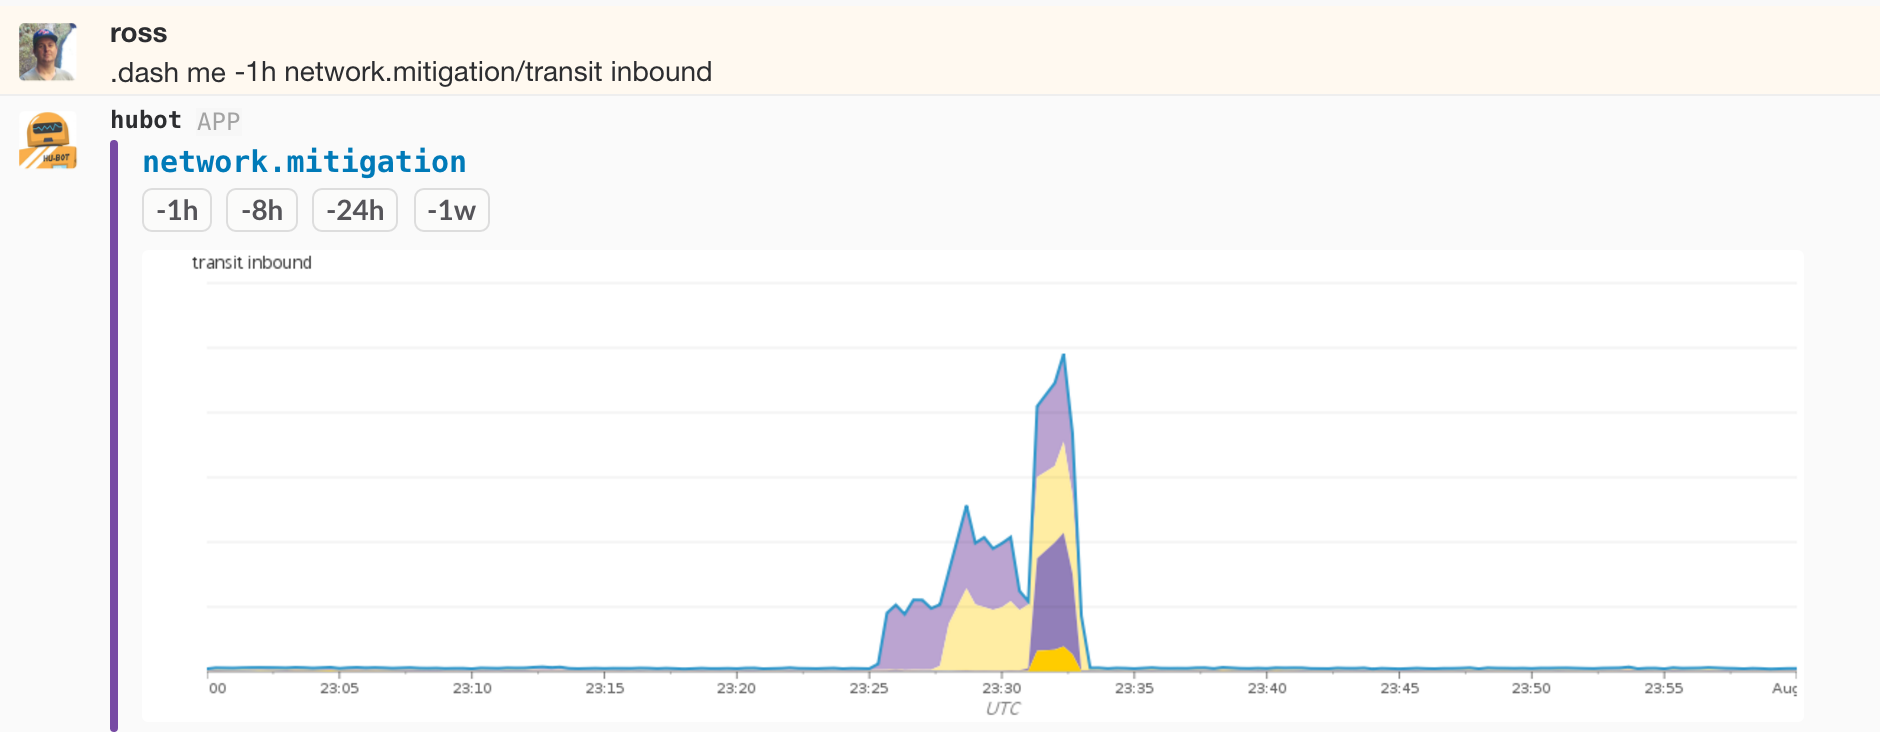 Bandwidth spike during a DDoS event